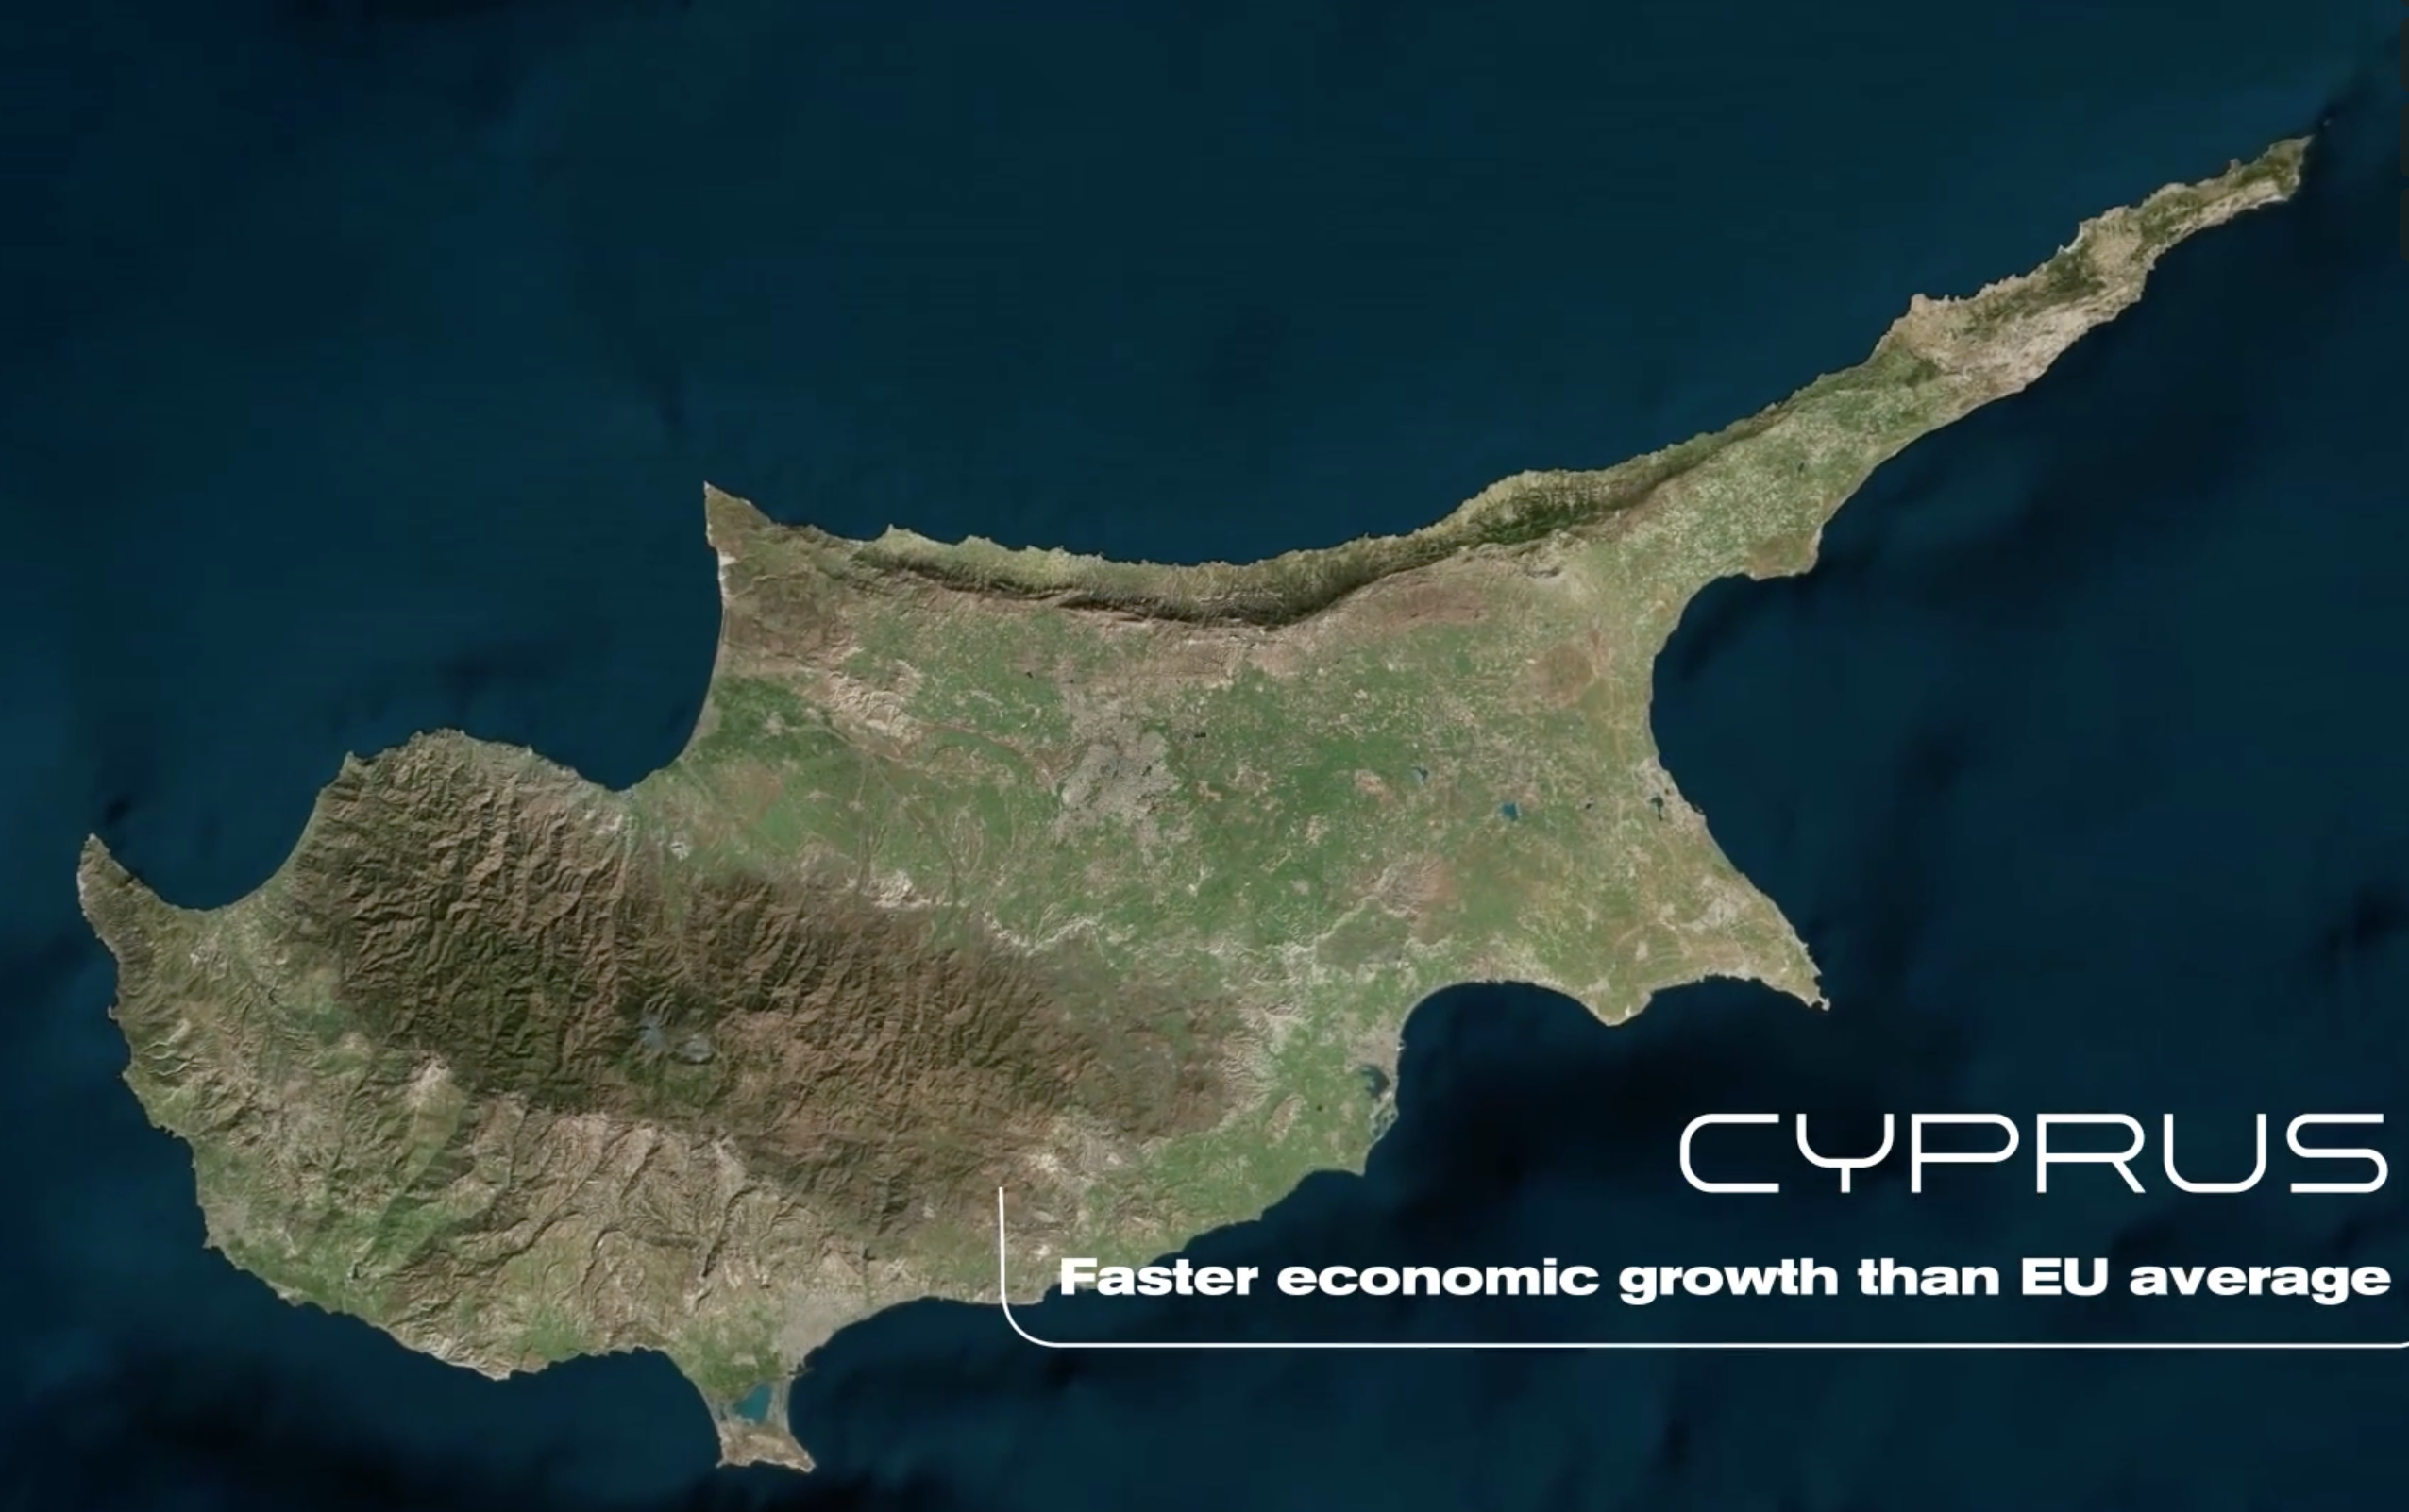 Cyprus - The Real Return on Investment cyprusinno